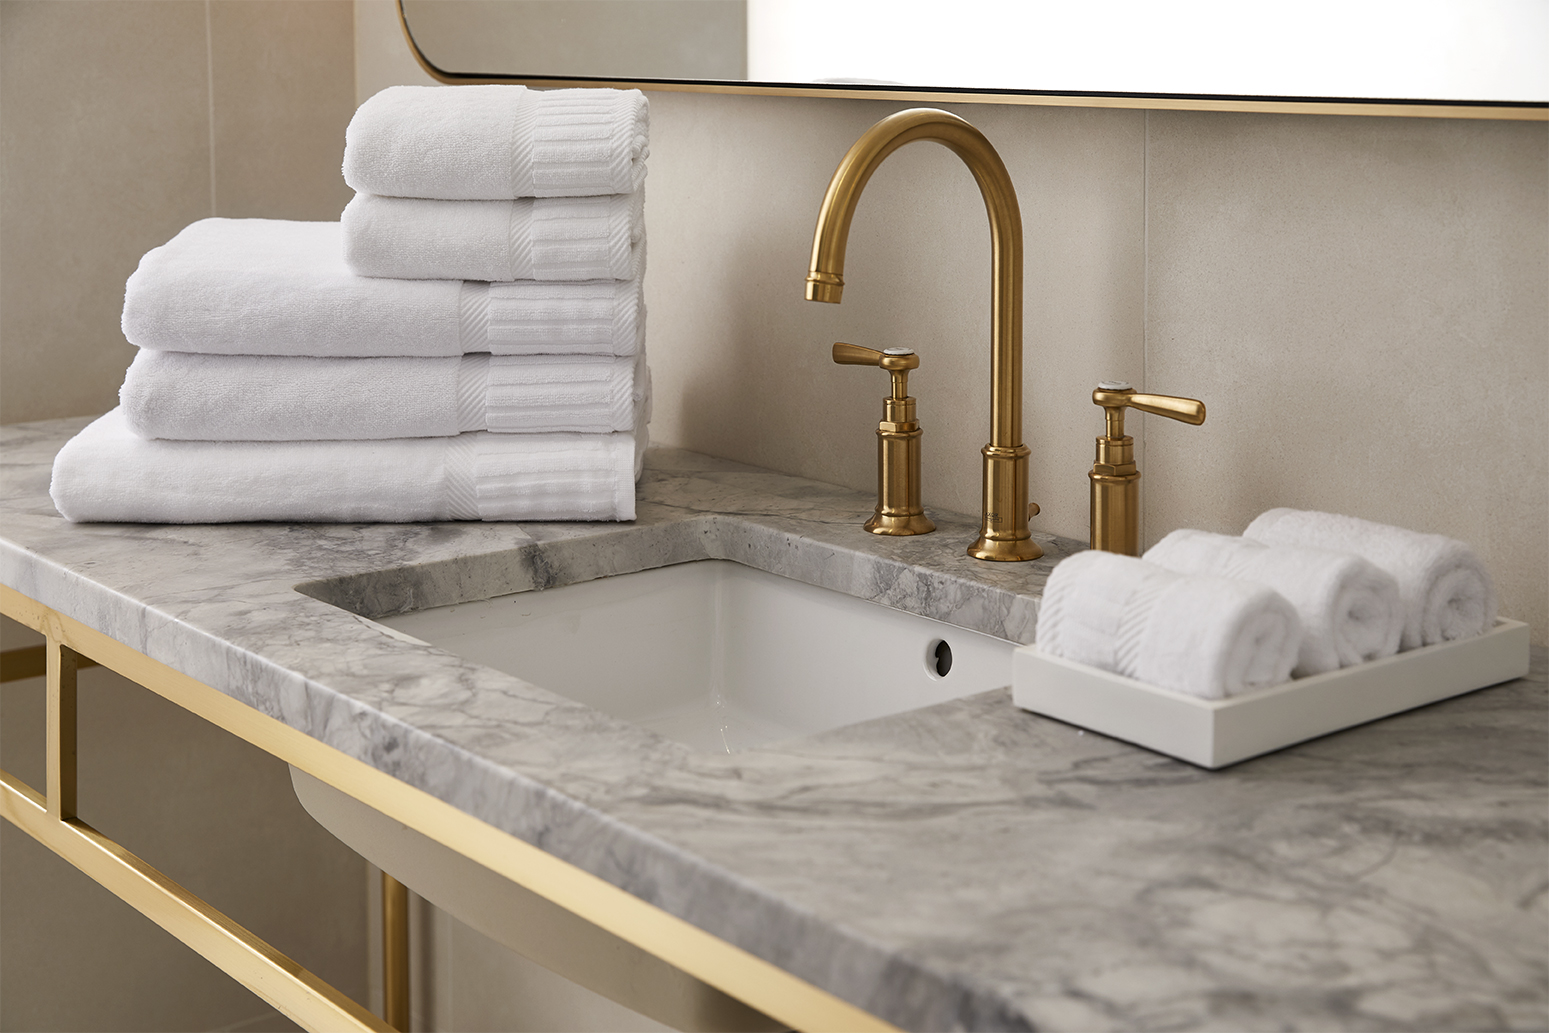 Revival_New_York_Luxury_Bath_Linens_Park_Collection_Products_Hospitality_Hotels